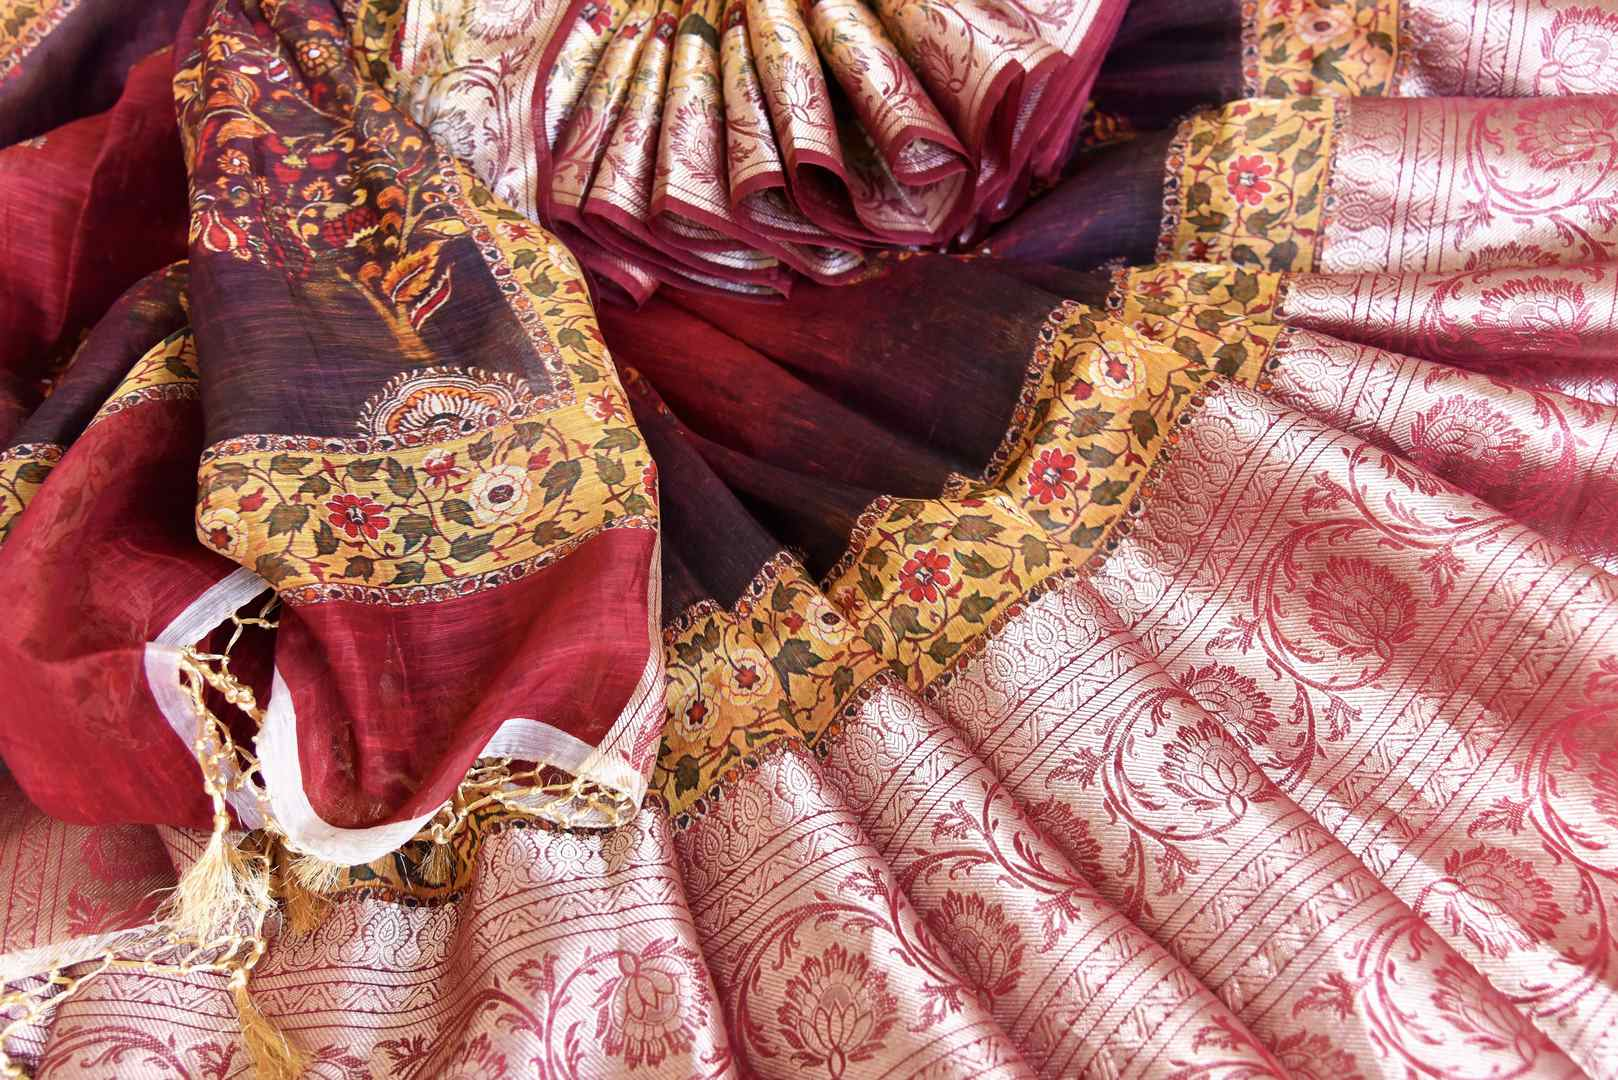 Shop maroon printed linen sari with zari border online in USA from Pure Elegance. Be occasion ready always with a range of beautiful traditional handwoven sarees, pure silk sarees, Banarasi saris, Kanchipuram sarees available at our Indian fashion store in USA. Grab your favorite pieces now also available at our online store.-details